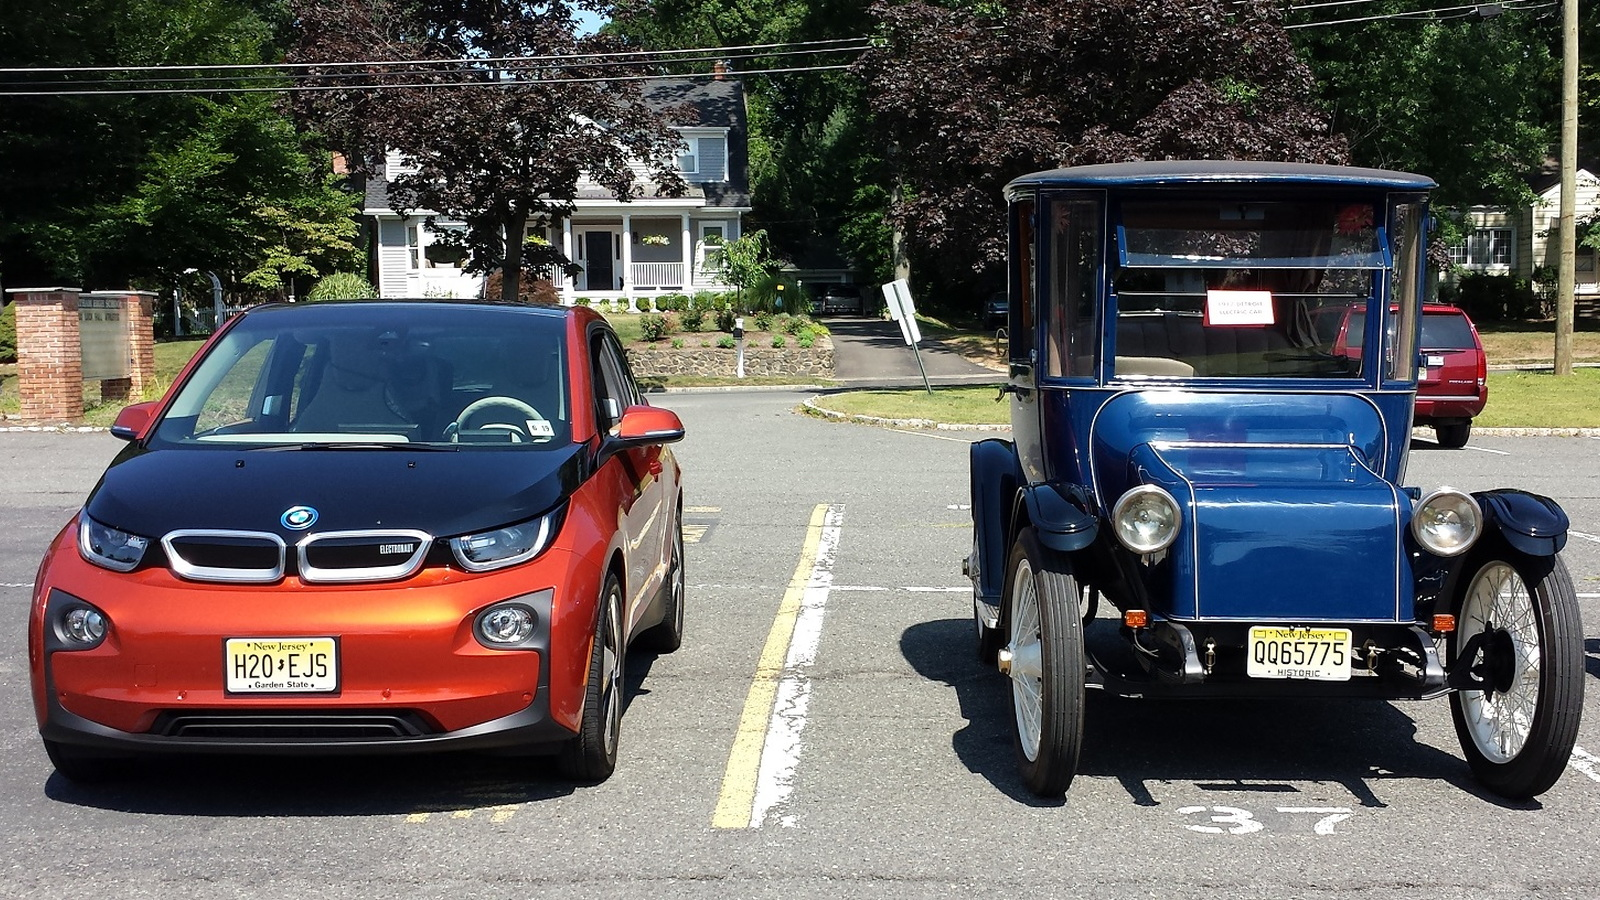 Donald Davidson's 1917 Detroit Electric Model 68 with Chris Neff's 2014 BMW i3 REx